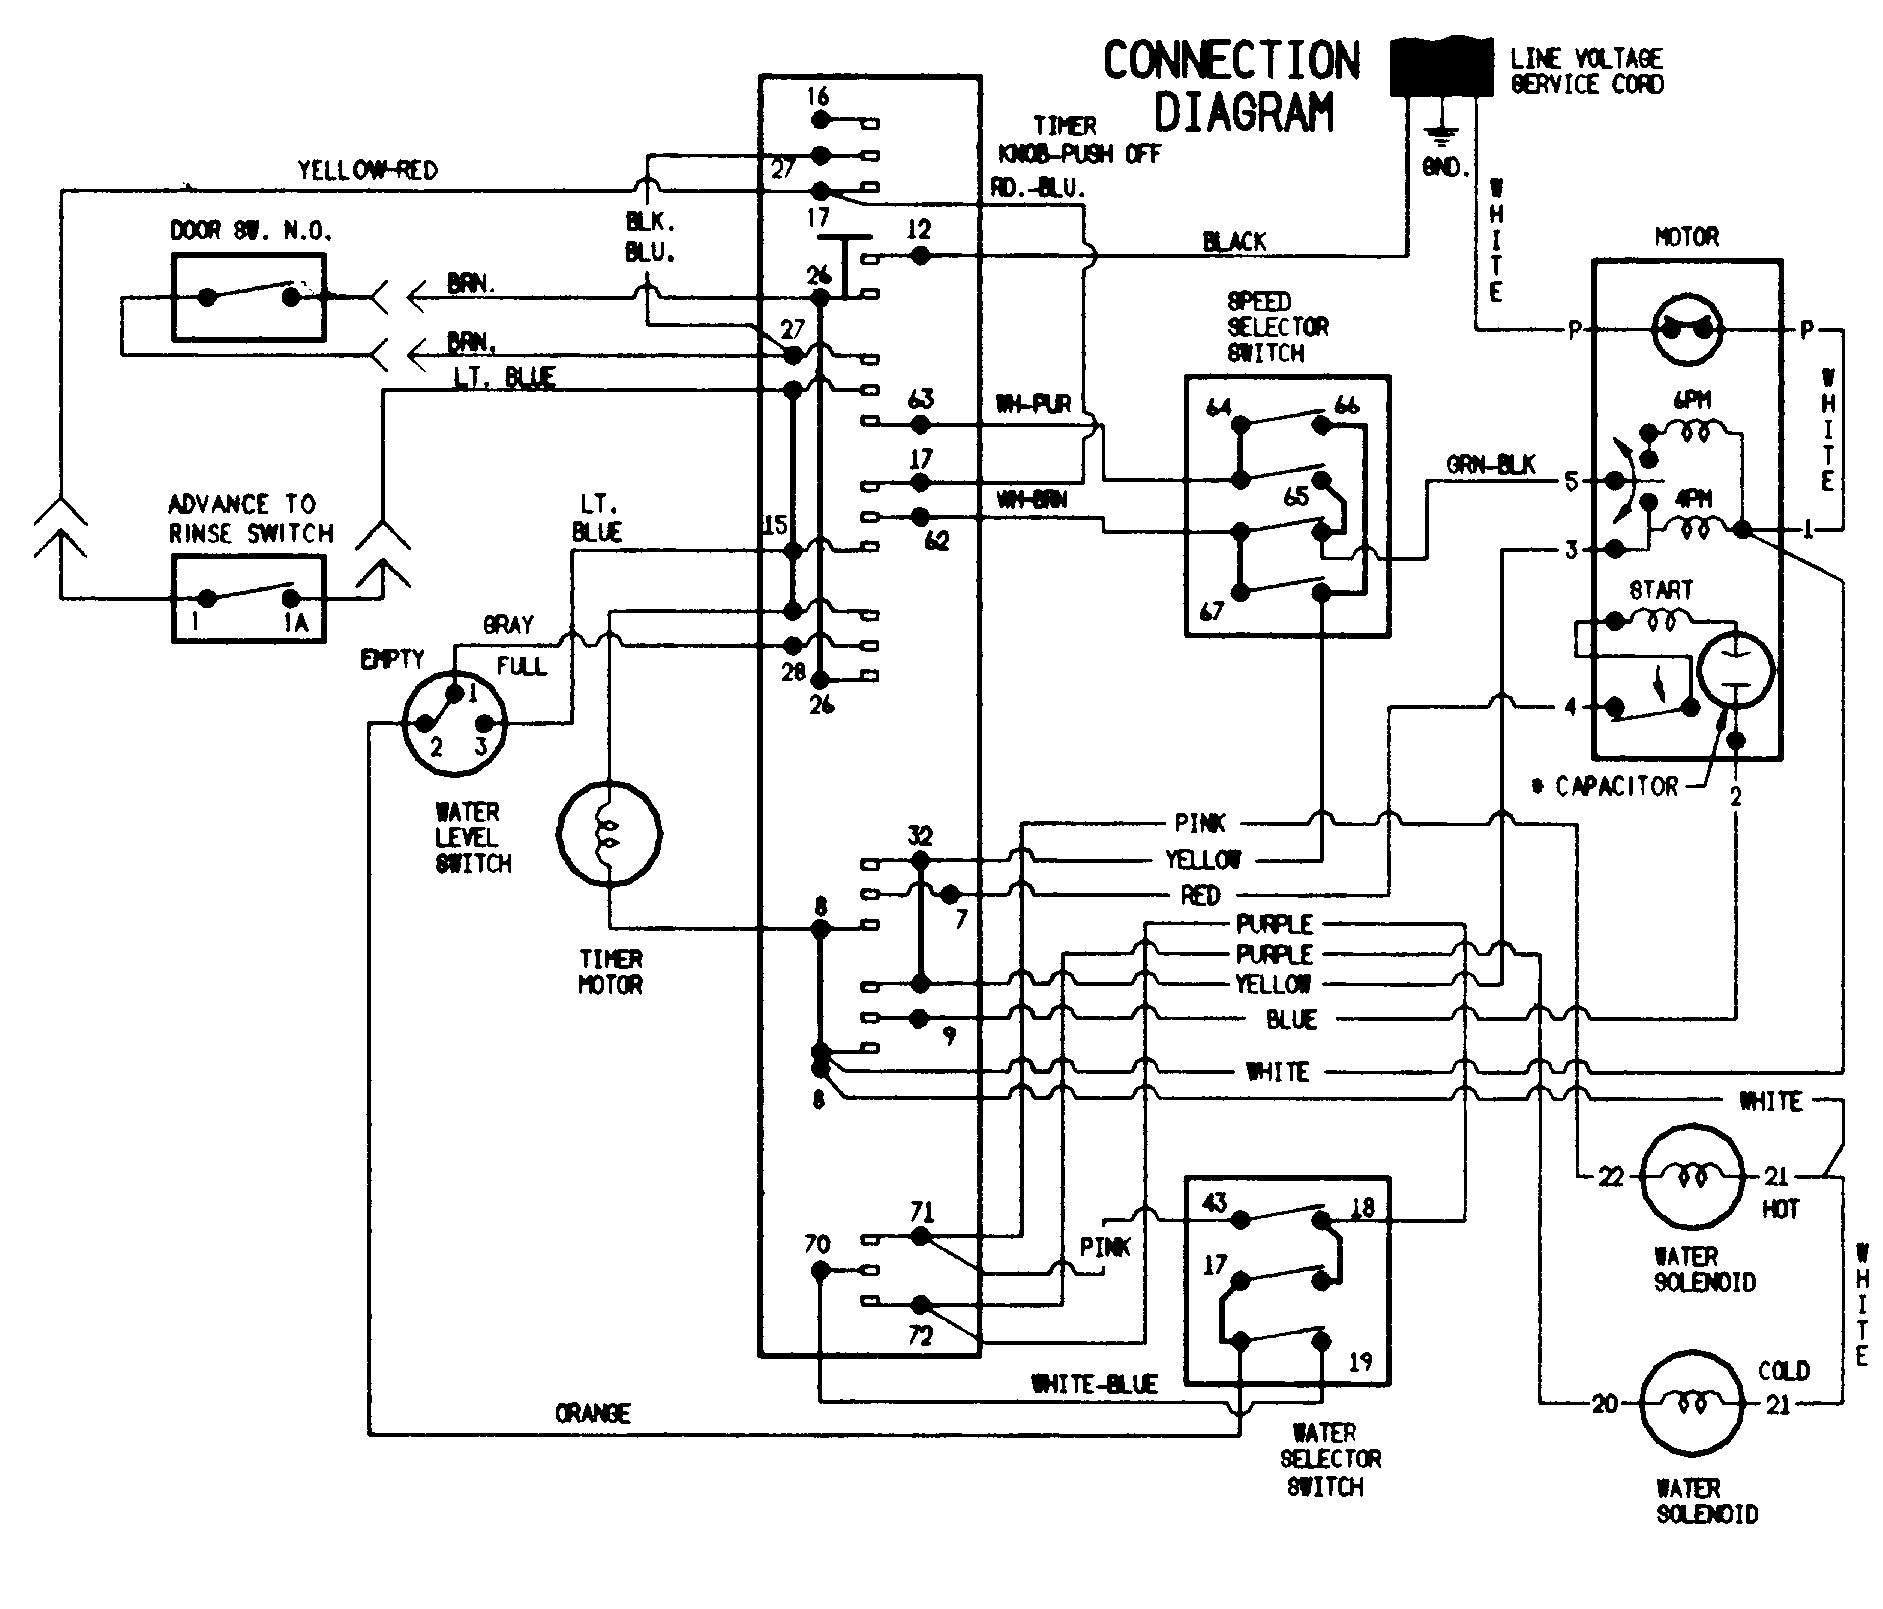 Famous Thomas School Bus Wiring Diagrams Gallery Wiring Diagram